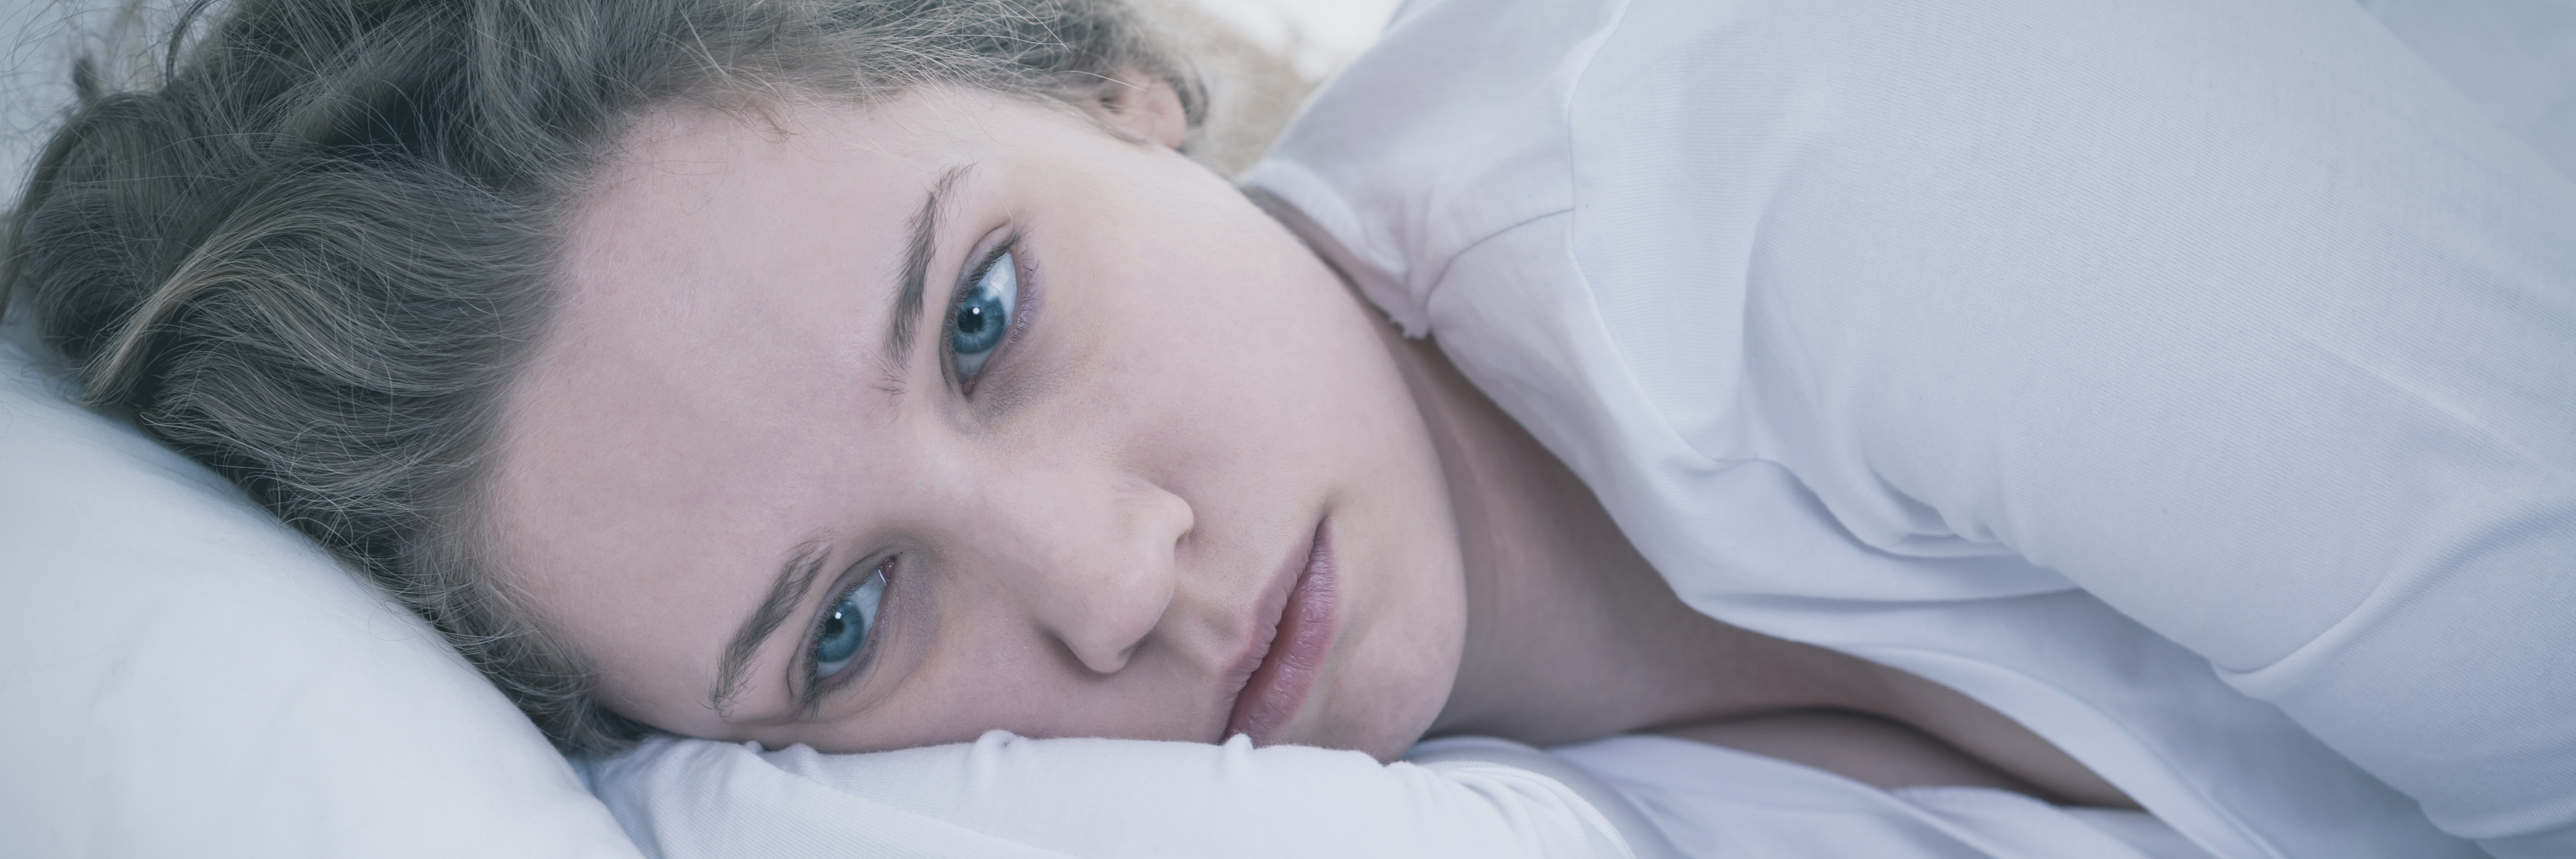 close up of woman lying in bed sad and depressed